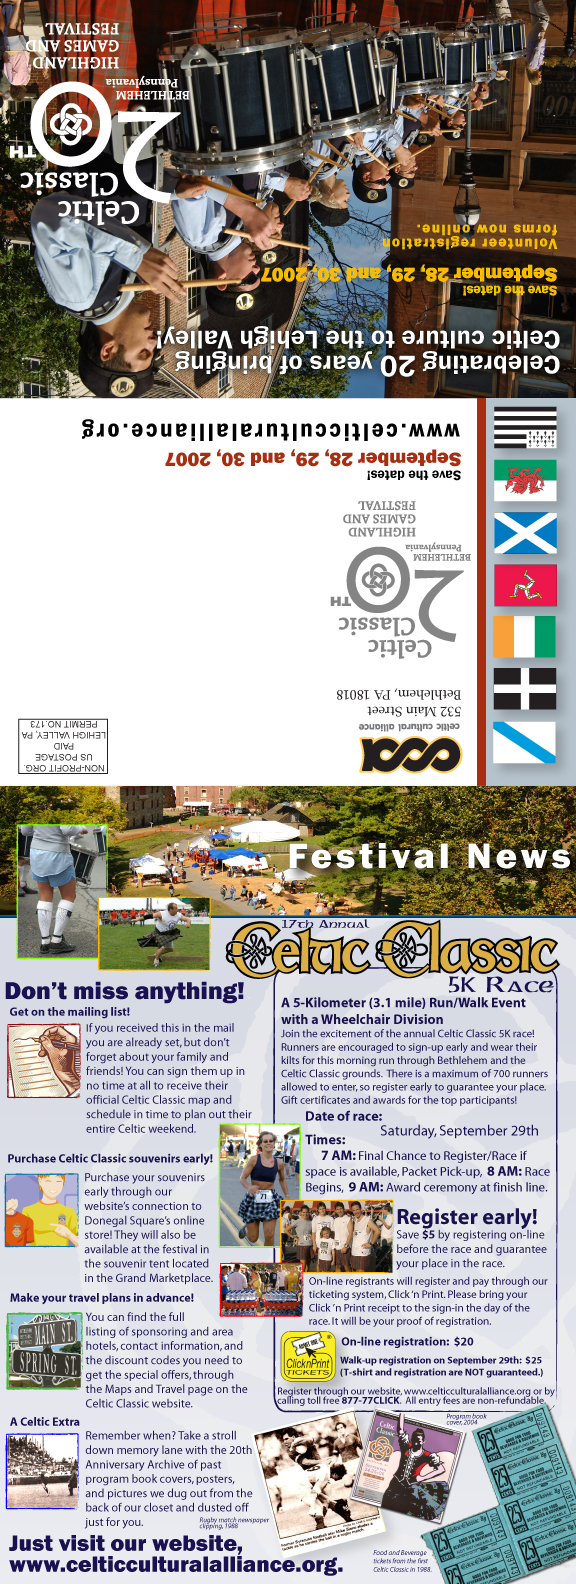 CELTIC  CLASSIC  • 12.5 x 8.8 PROMOTIONAL MAILER   CLIENT: Celtic Cultural Alliance PLACEMENT: Piece was  mailed out to Celtic Classic's 10,000+ mailing list to promote Festival attendance. WORK: Adobe illustrator